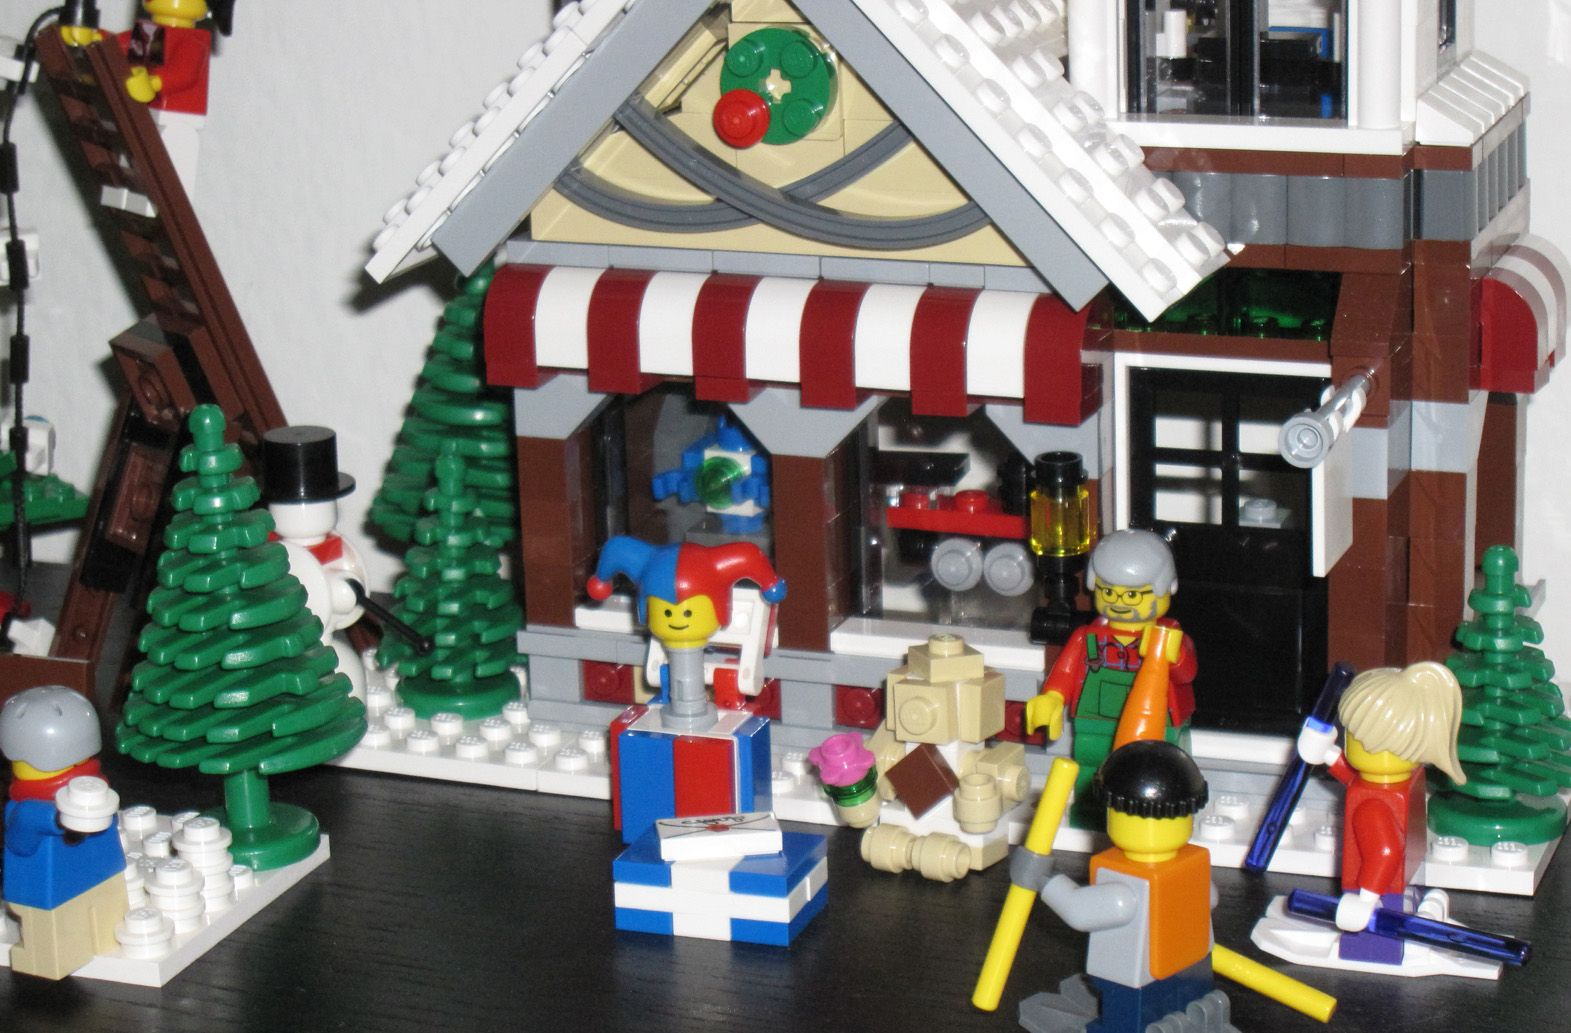 Lego 10199 Winter Village Toy Shop I Brick City 10249 Exclusive Ibrickcity 4